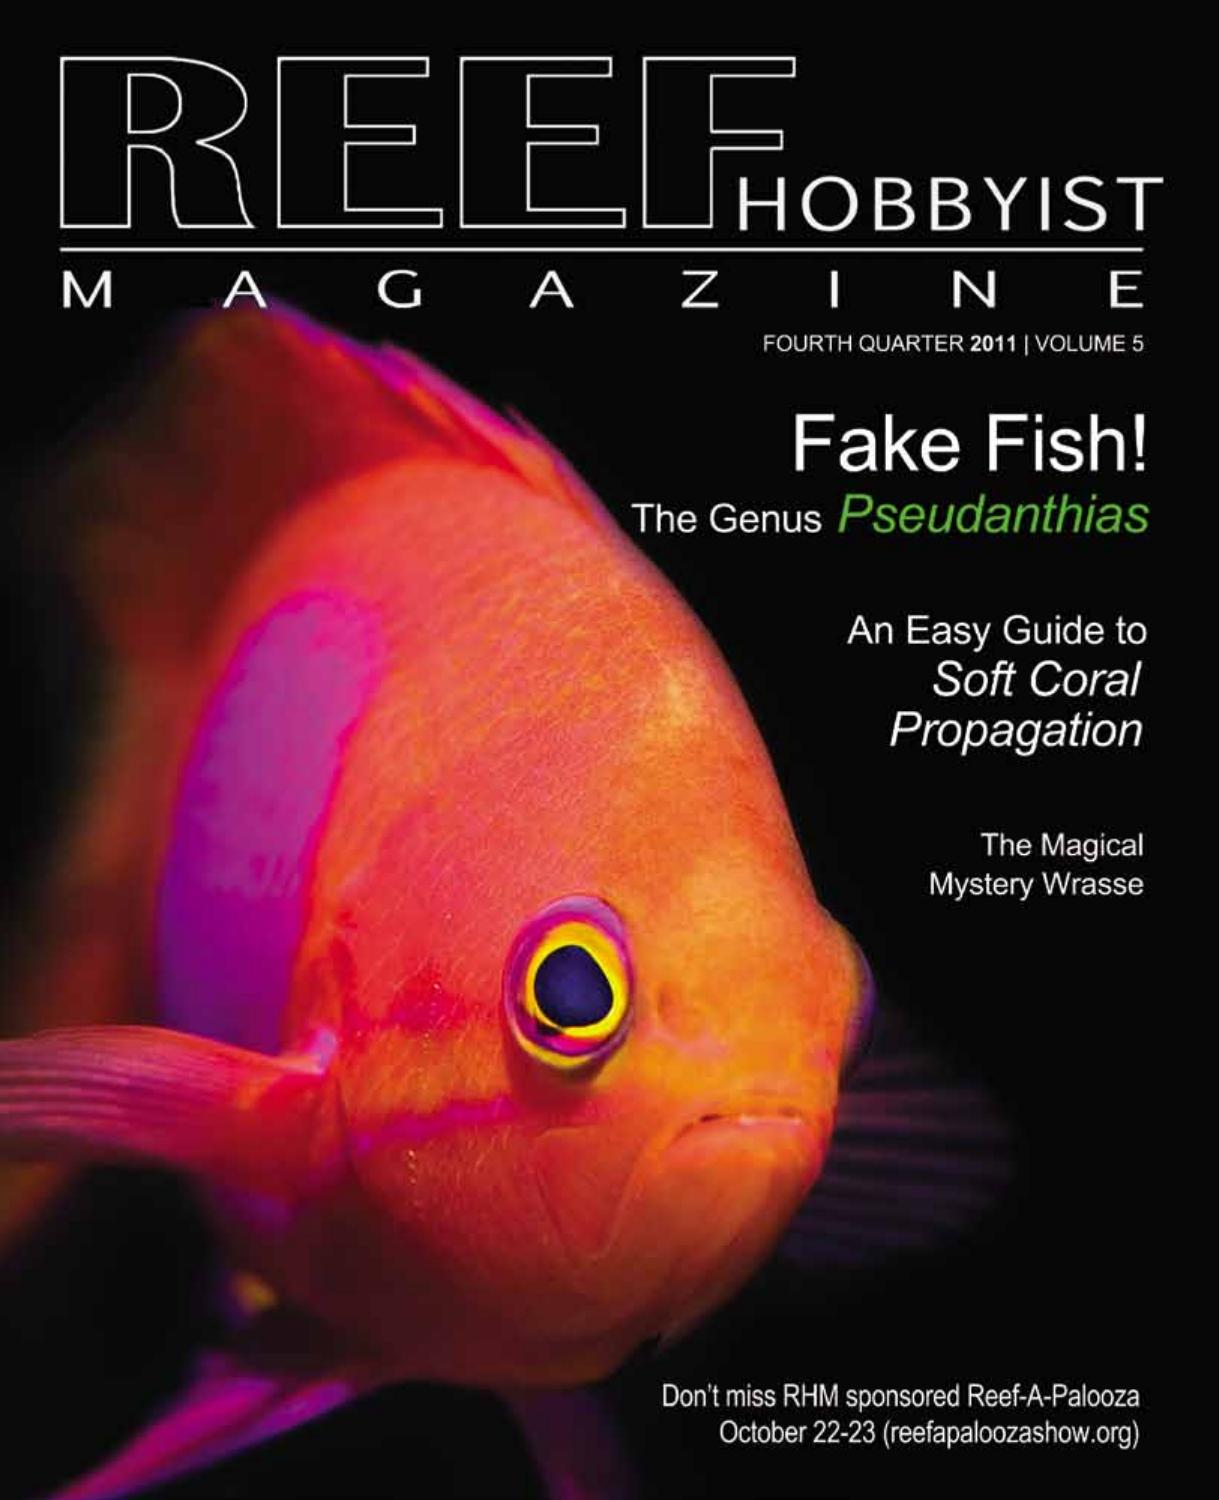 Reef Hobbyist Magazine Q4 2011 by harry tung - issuu